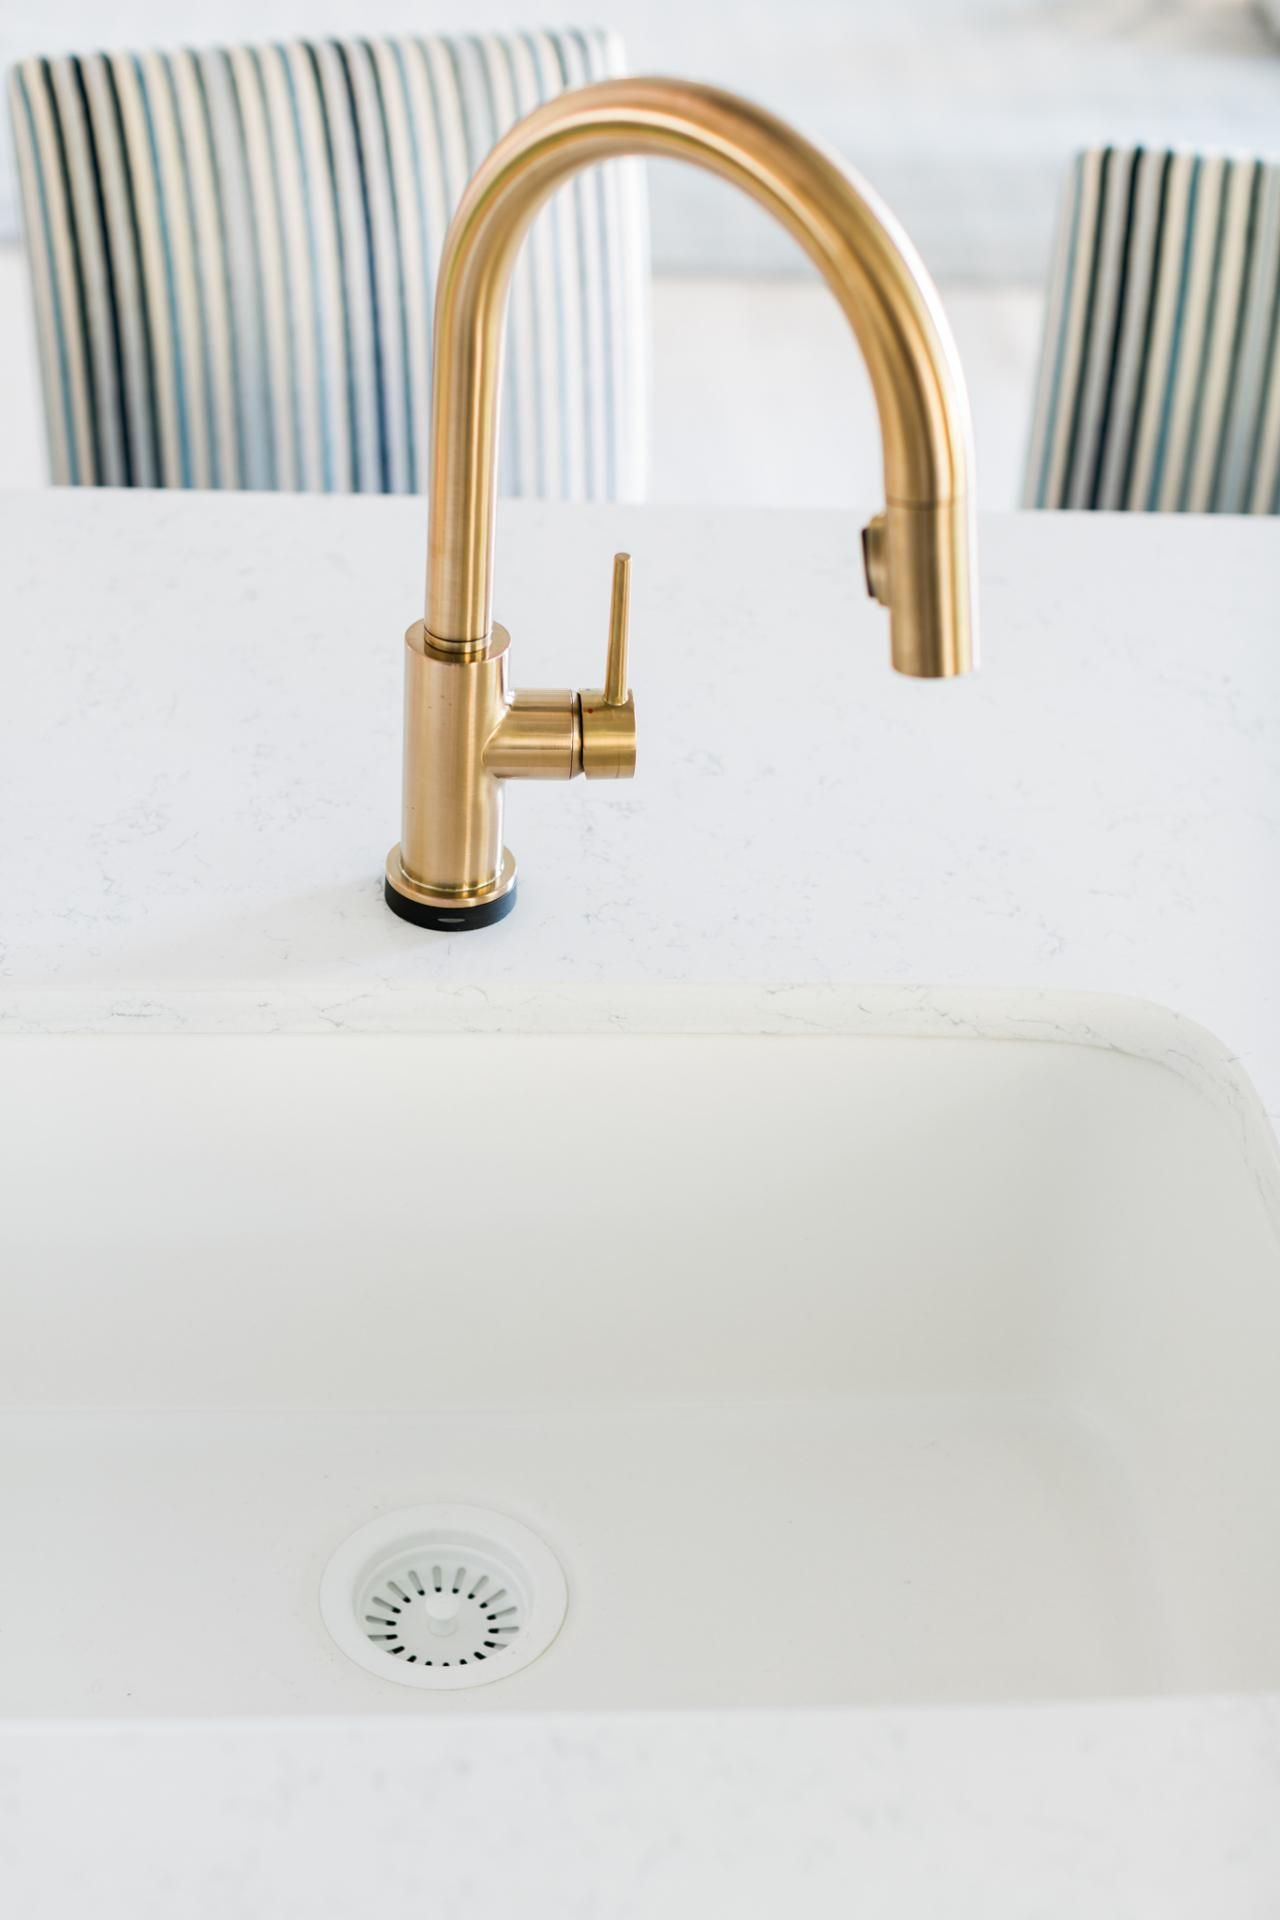 repair reviews fascinating touchless trinsic the begging moen just inspiration files is appealing delta to kitchen faucet single for picture from touch and trends handle